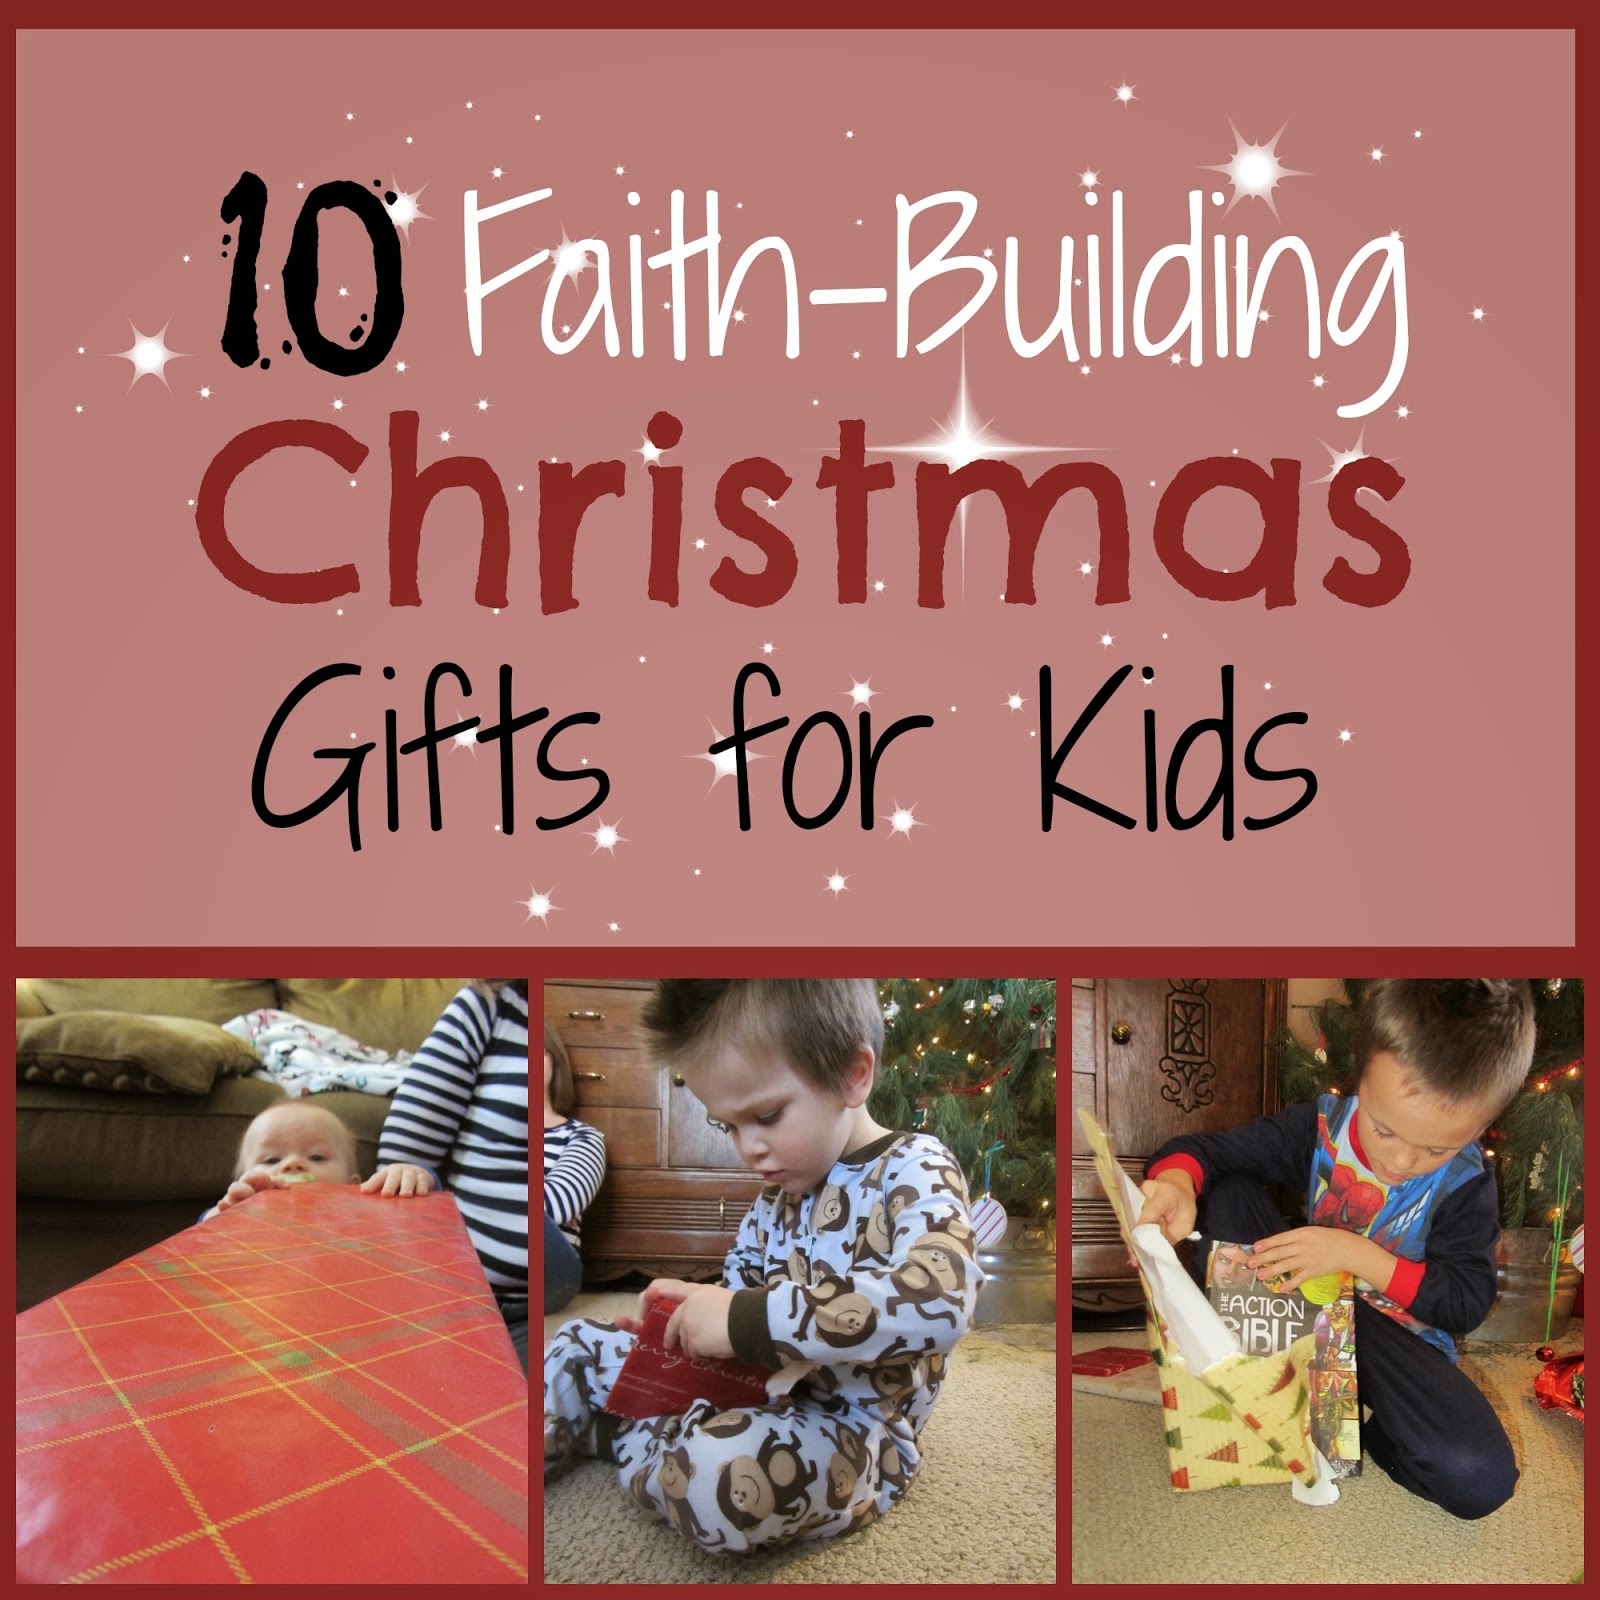 The Unlikely Homeschool: 10 Faith-Building Christmas Gifts for Kids